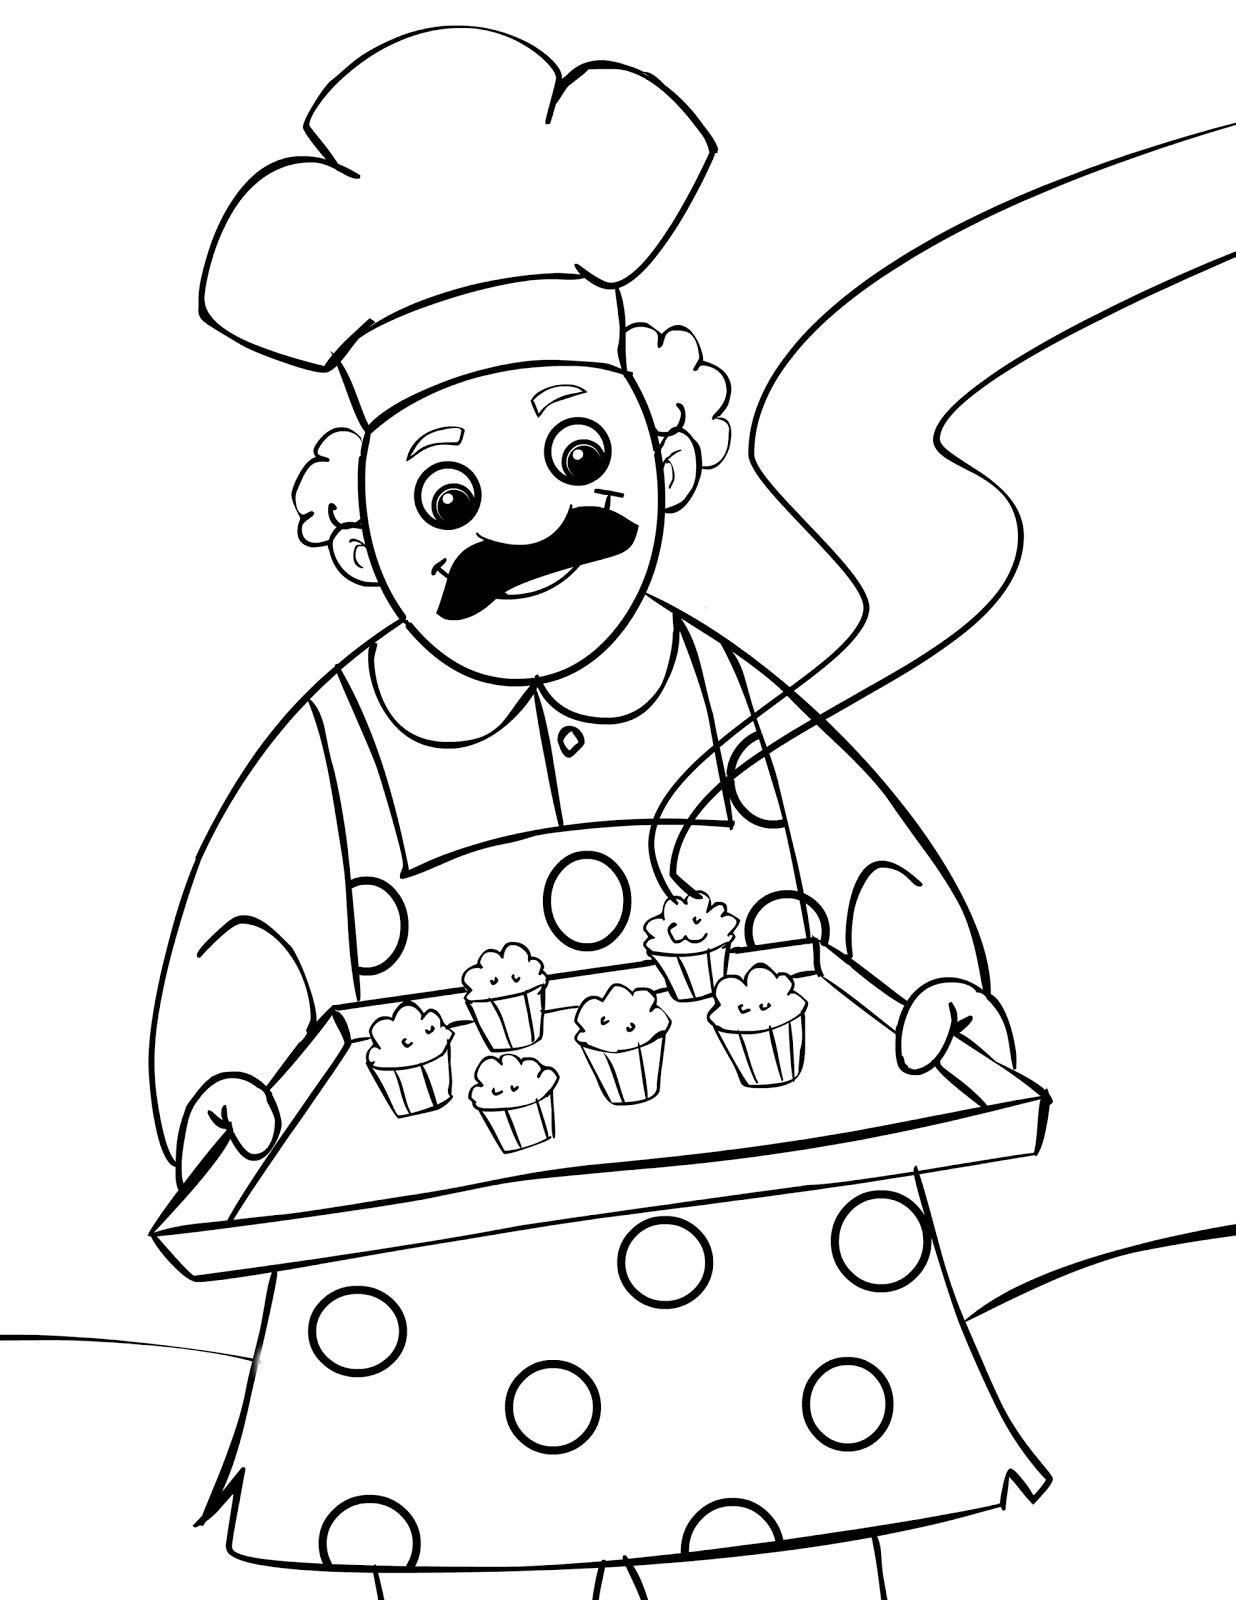 muffin pictures to color food coloring pages children39s best activities color to muffin pictures